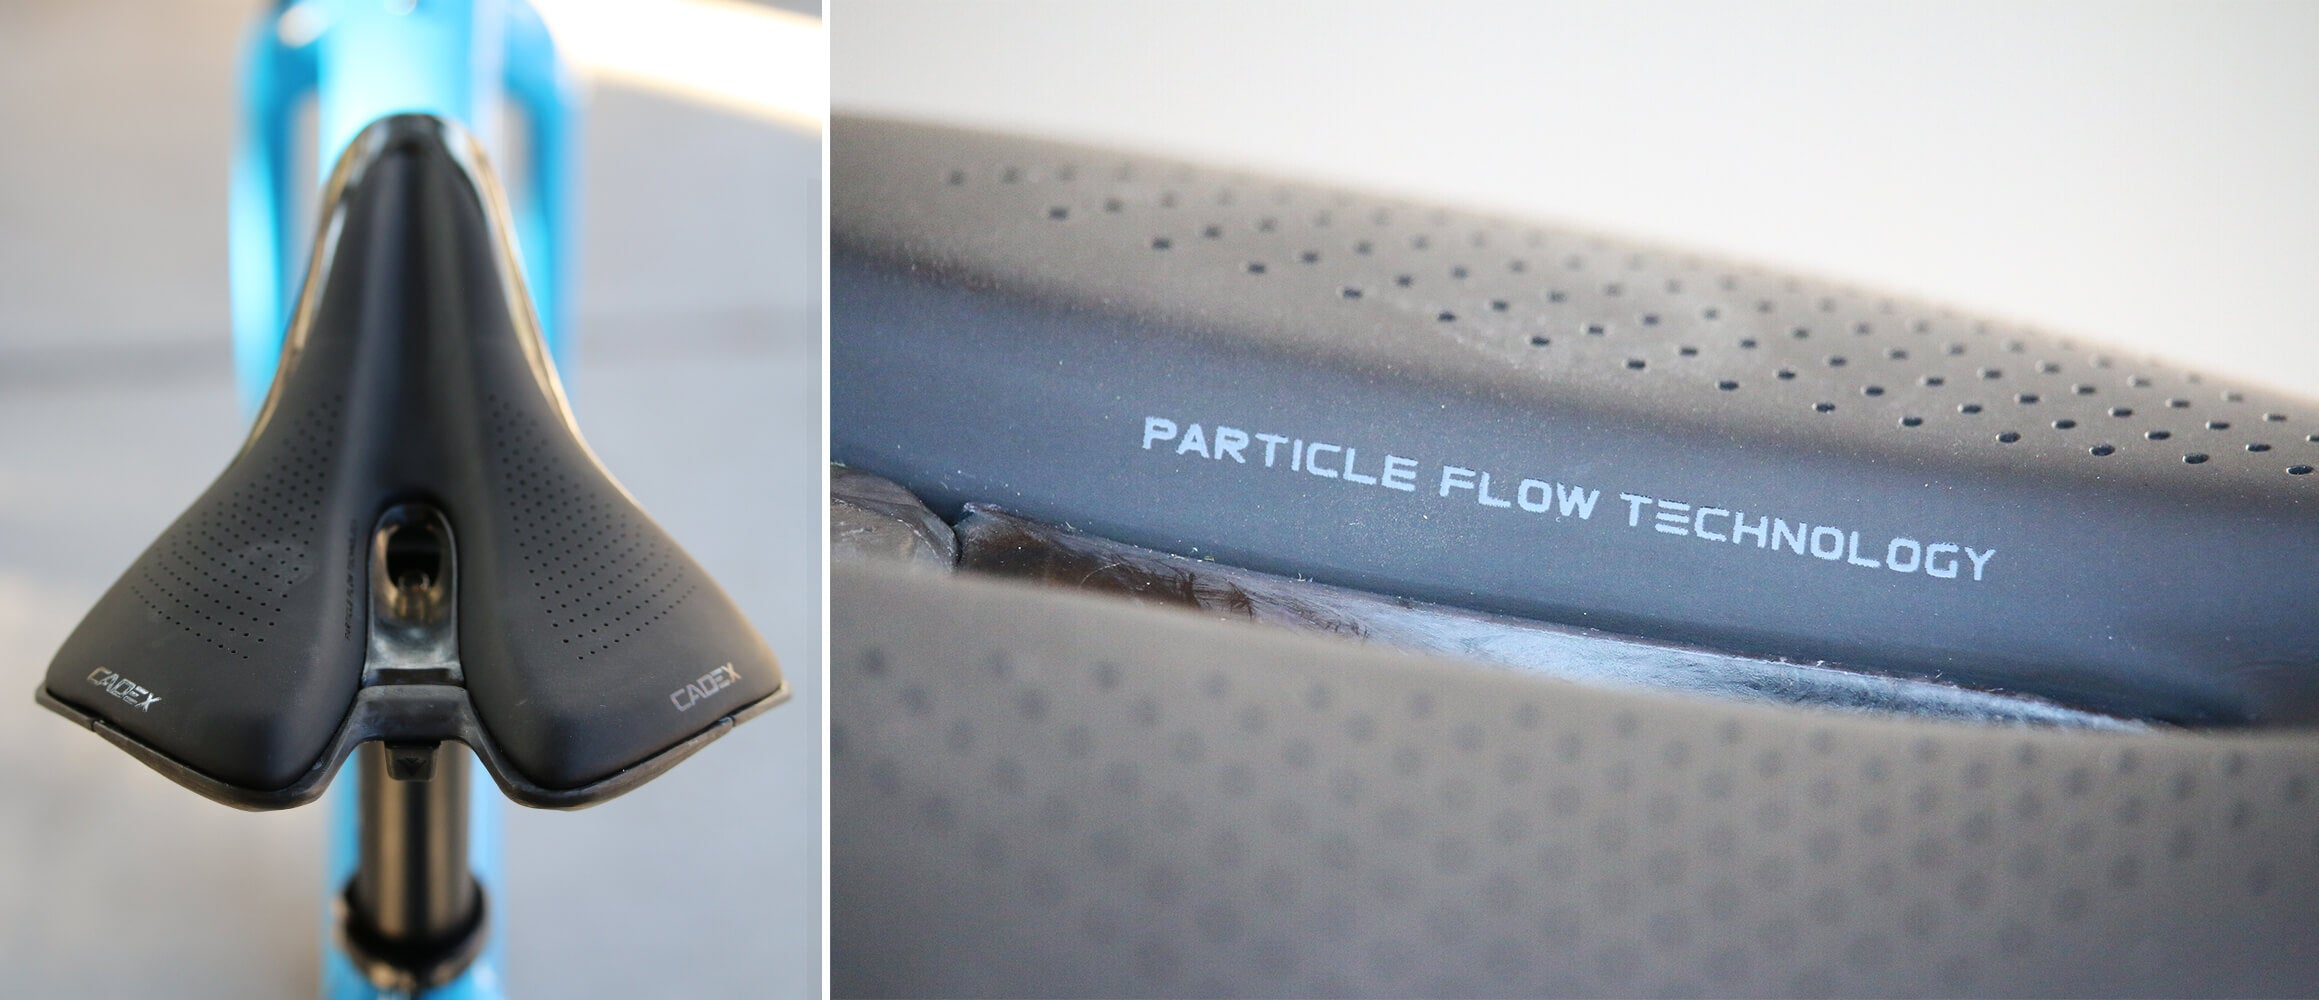 CADEX Boost Saddle - Particle Flow Technology